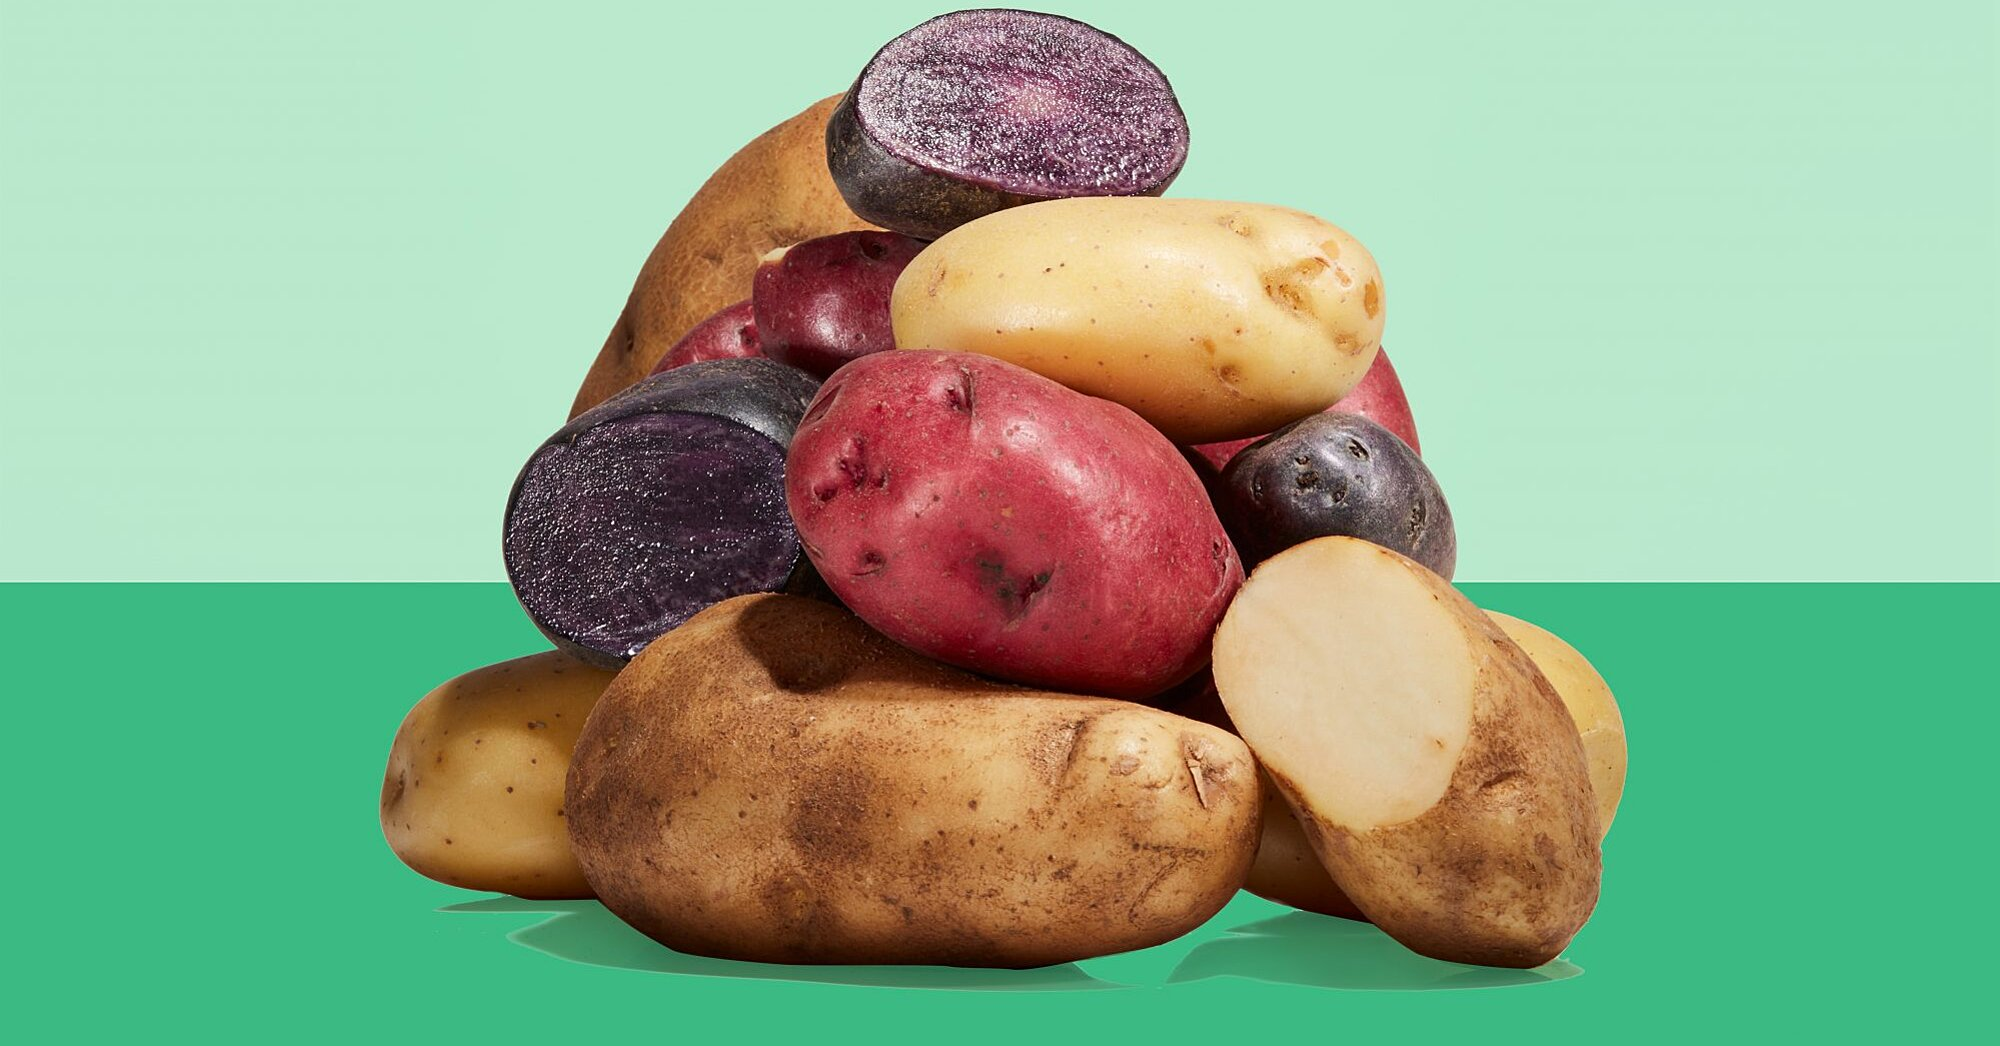 The Best Potatoes to Use for Each of Your Favorite Tater Recipes